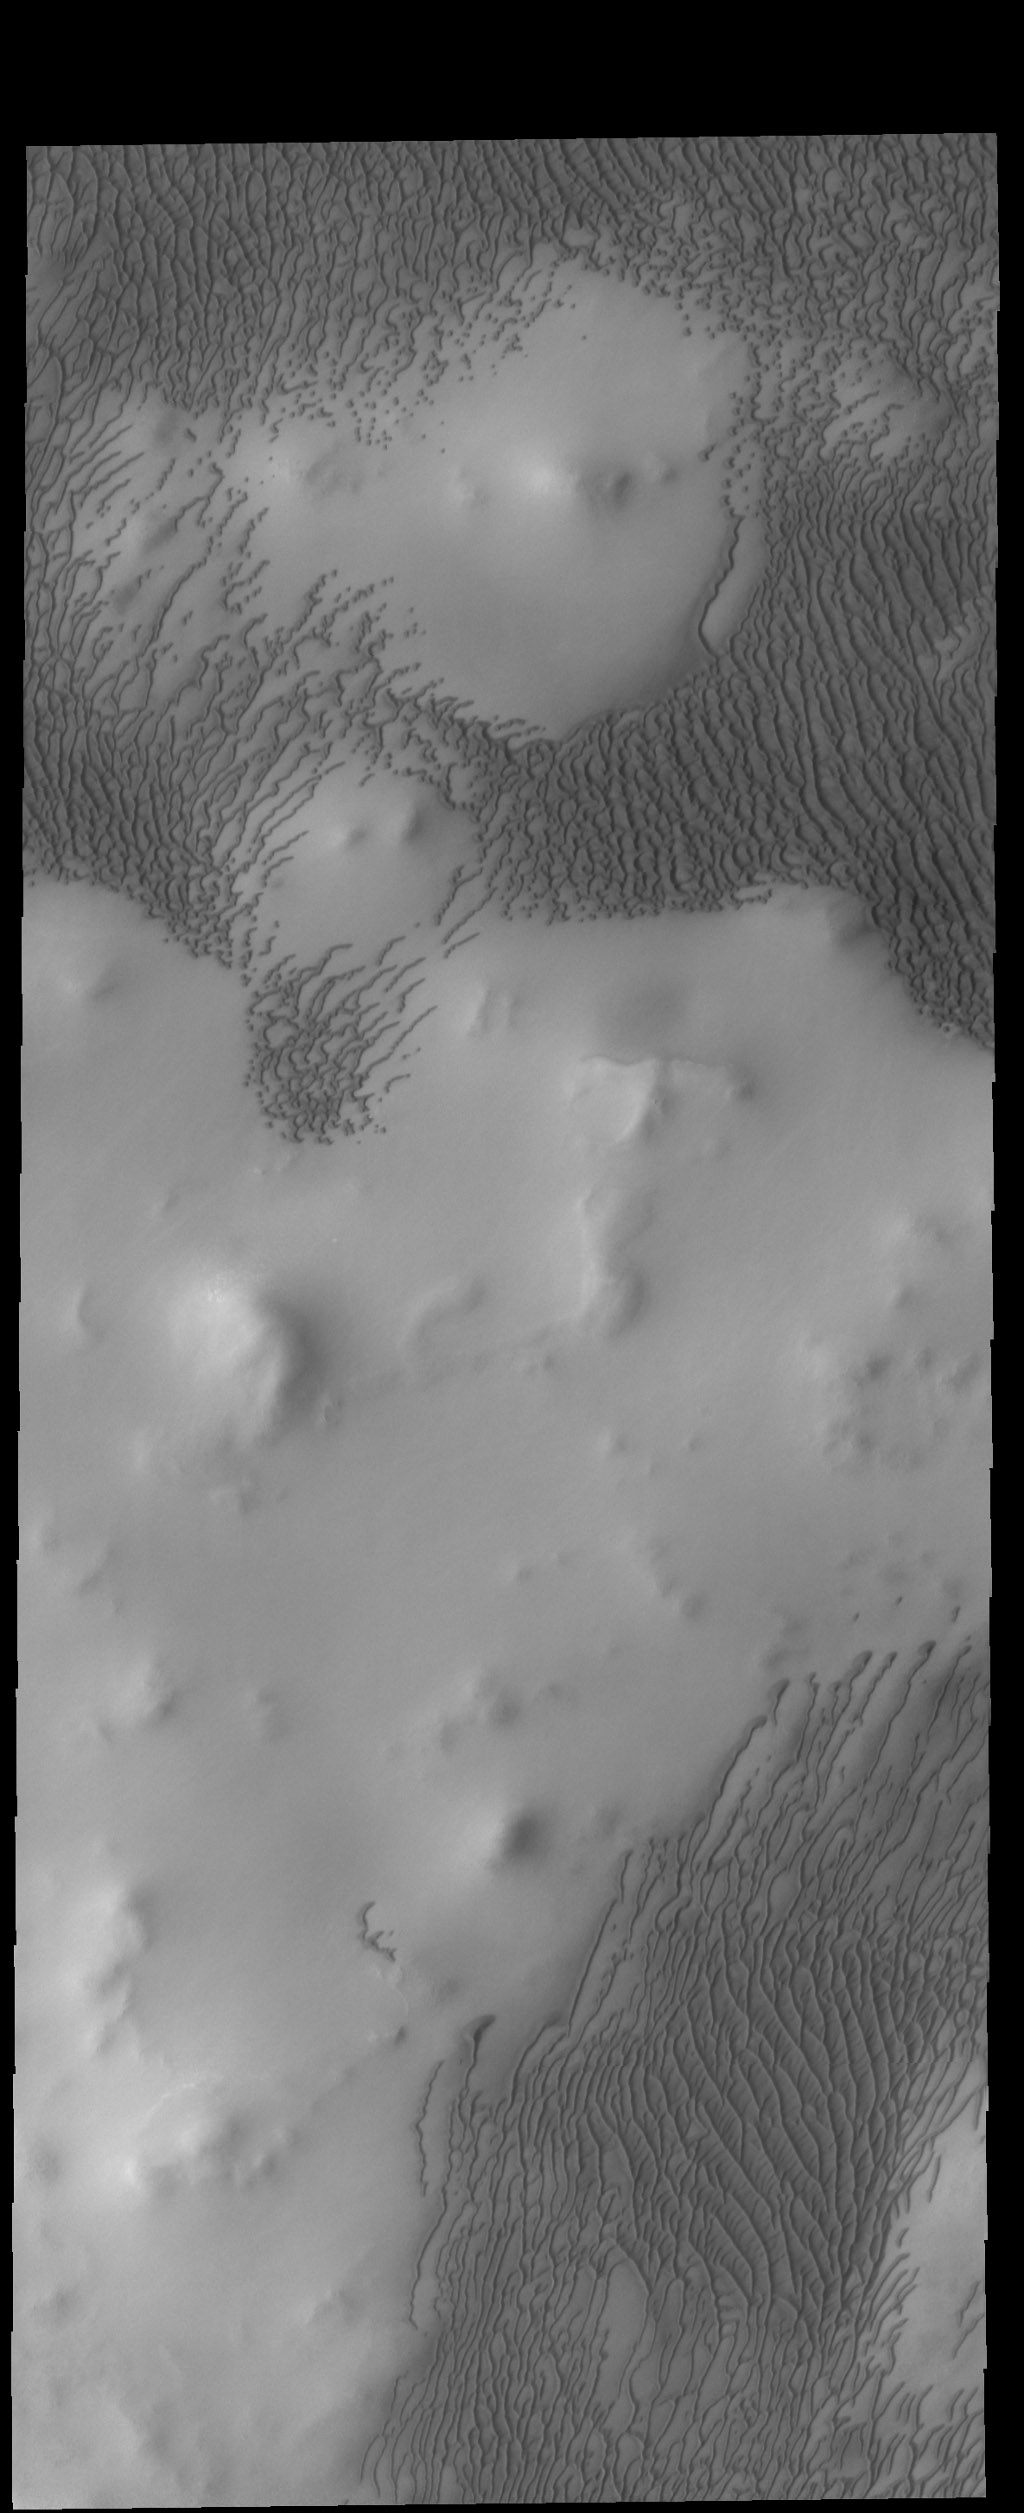 This image captured by NASA's 2001 Mars Odyssey spacecraft shows part of the large dune field called Olympia Undae. There are hills in this region, and the dunes are concentrated in the lower elevations.